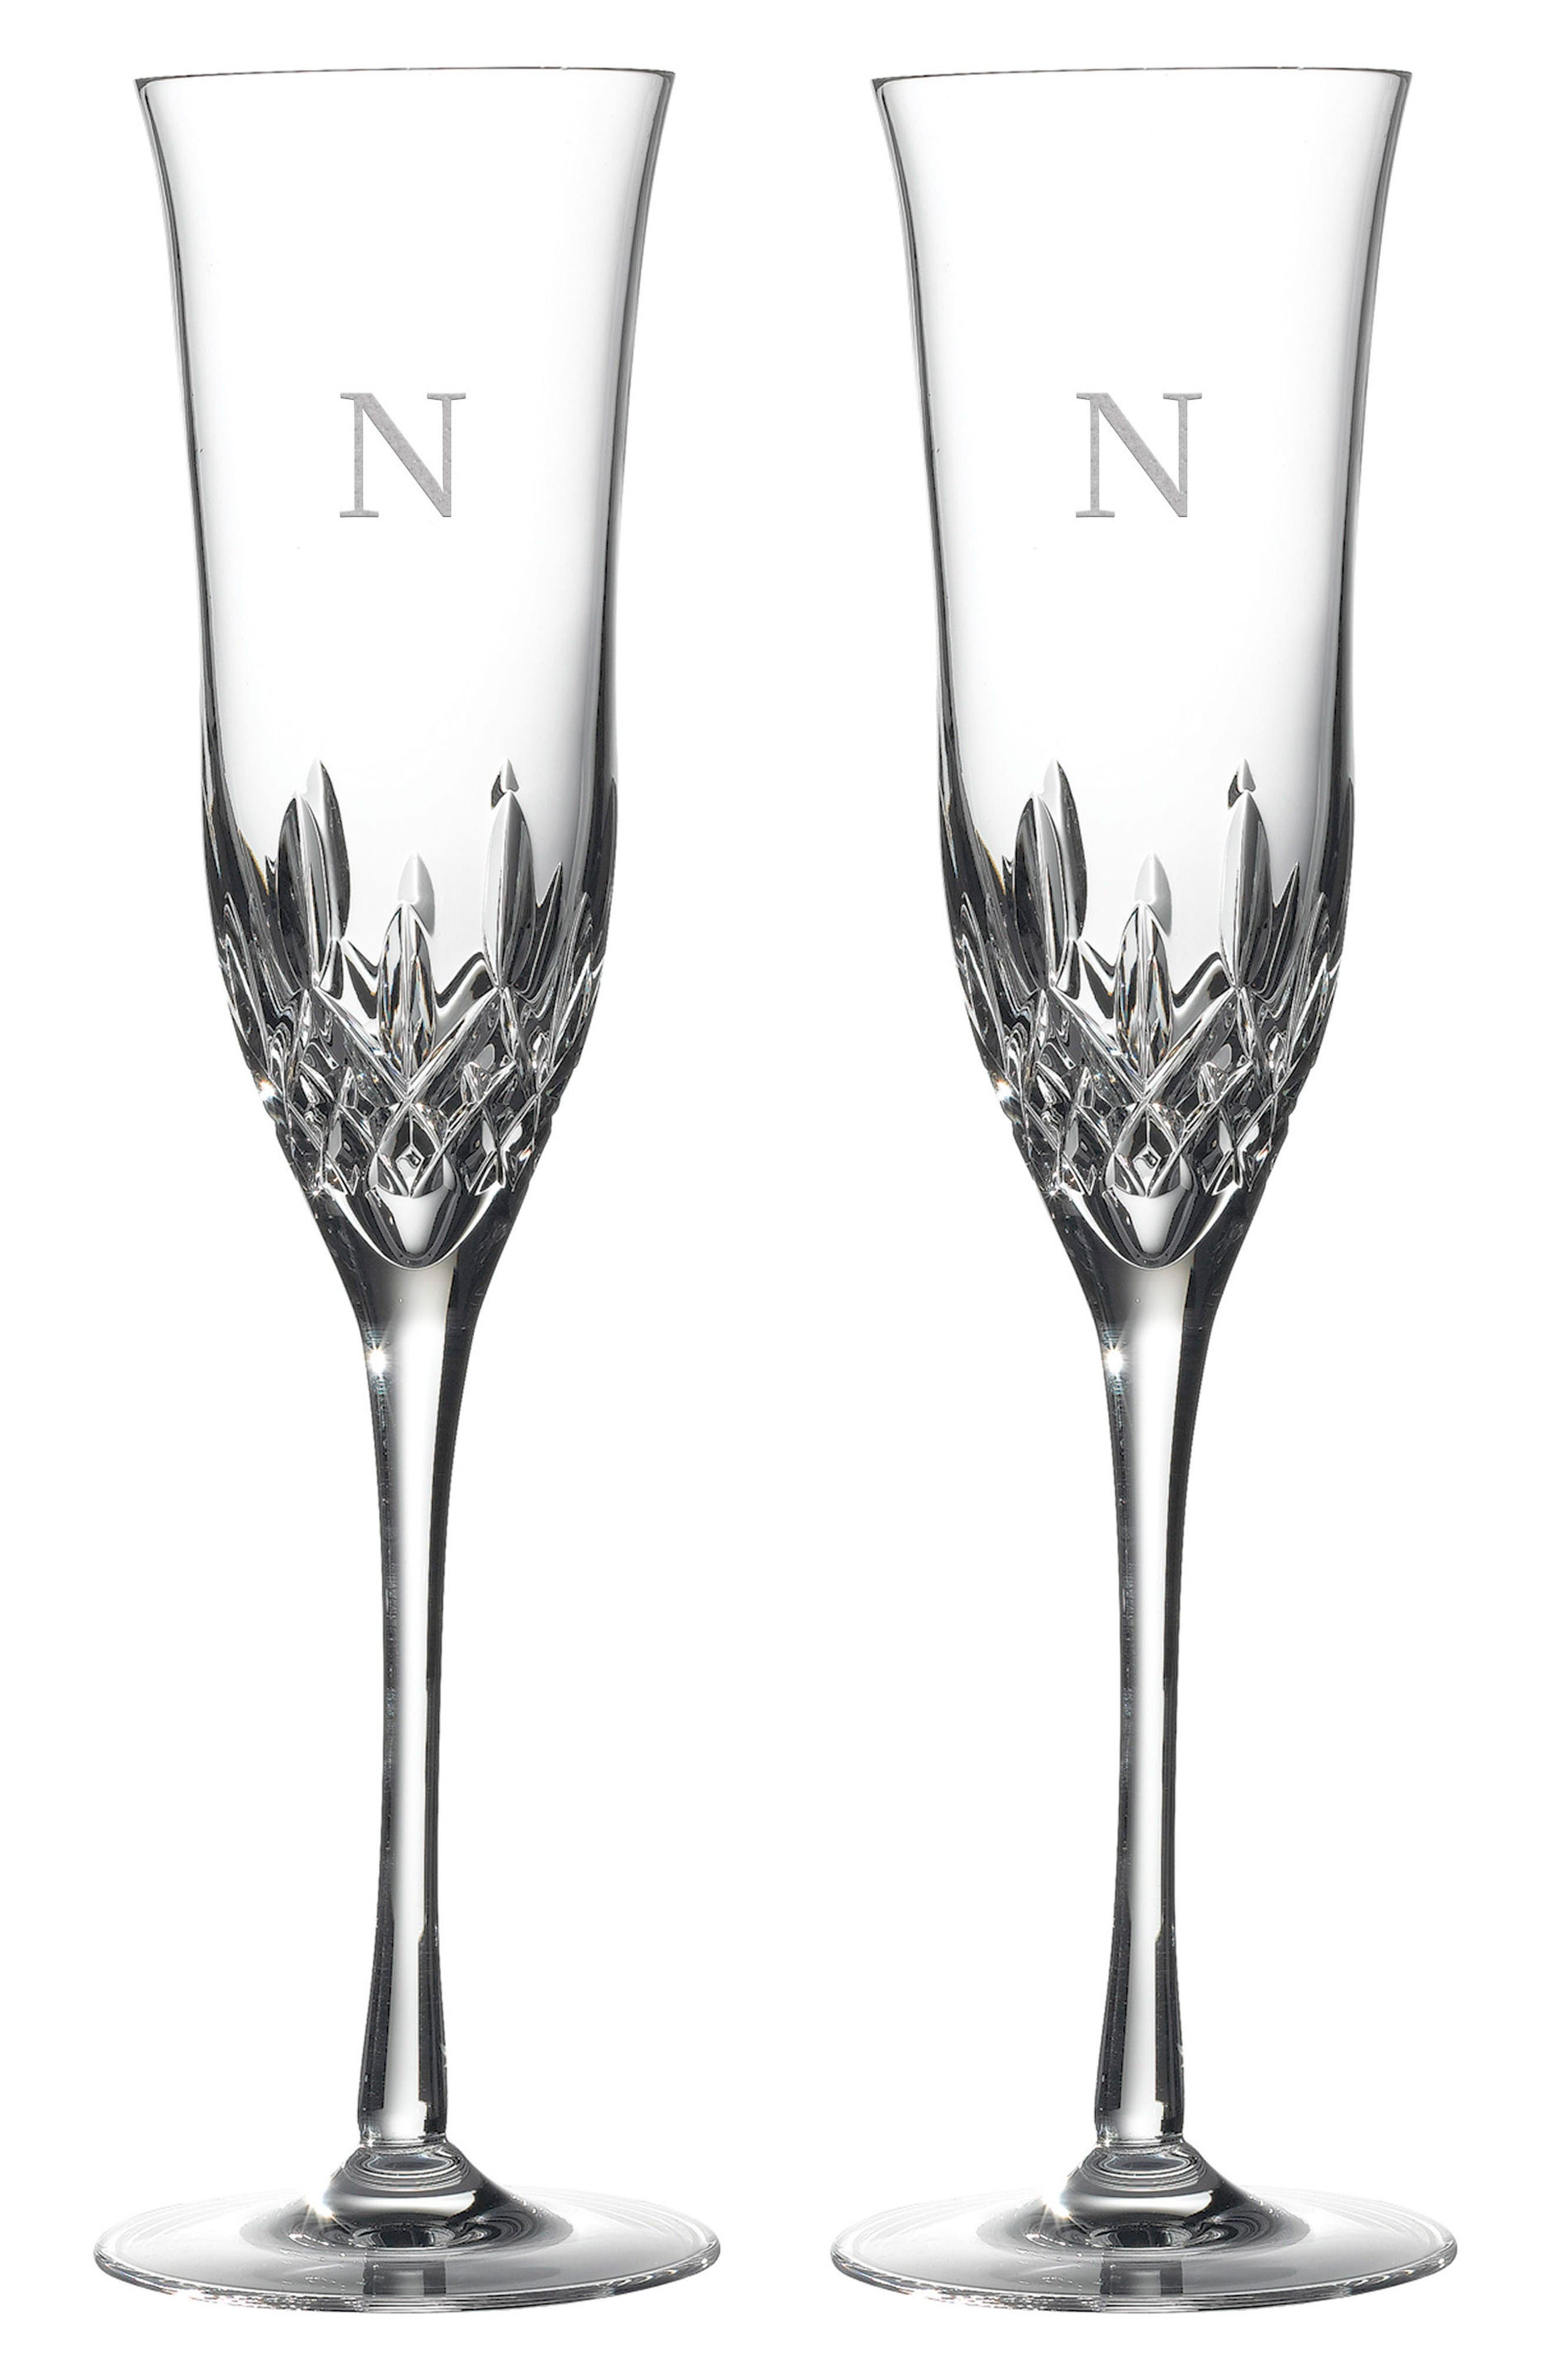 Main Image - Waterford Lismore Essence Set of 2 Monogram Lead Crystal Champagne Flutes